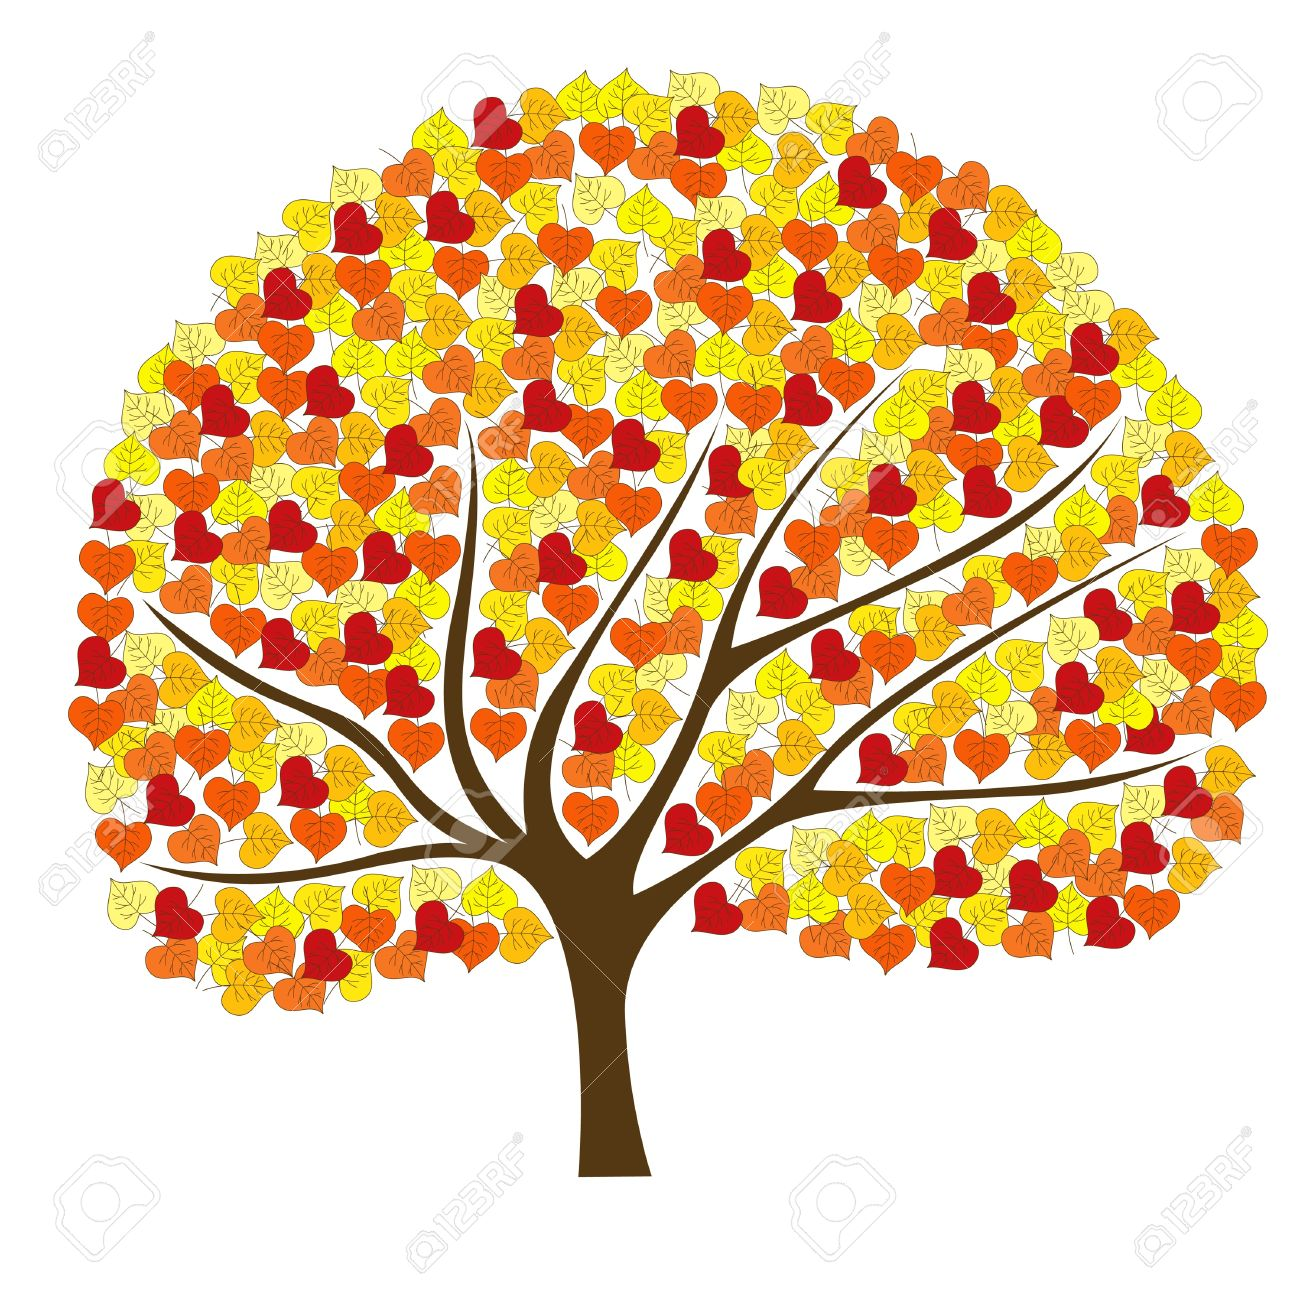 Autumn tree with hearts clipart picture free Autumn tree with hearts clipart - ClipartFox picture free